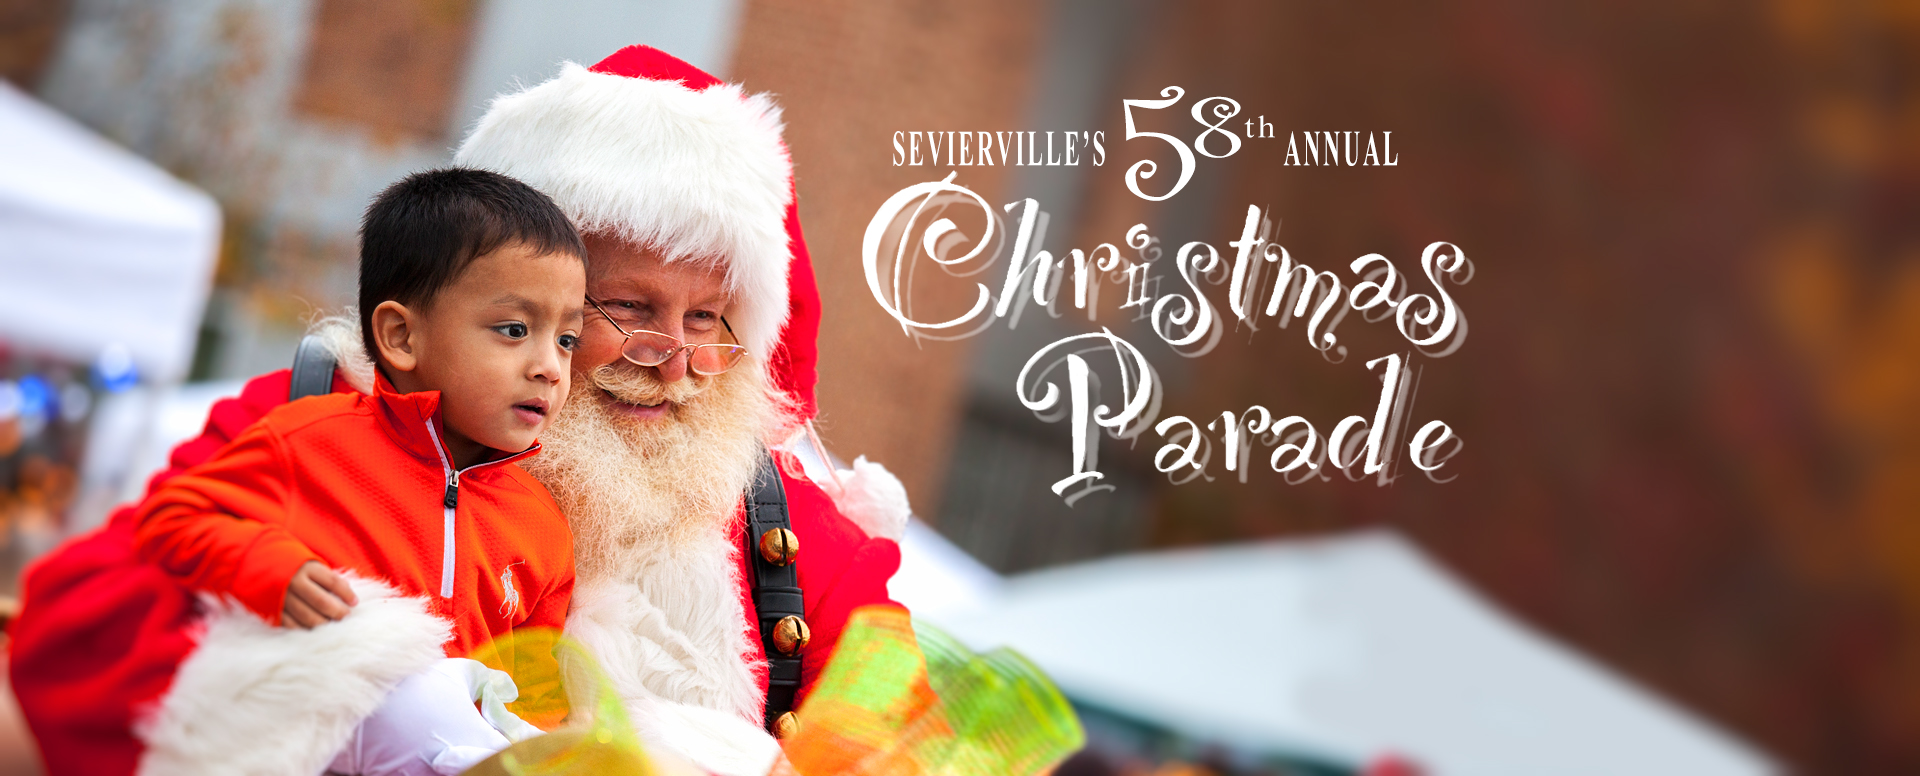 Sevierville Chamber of Commerce Christmas Parade